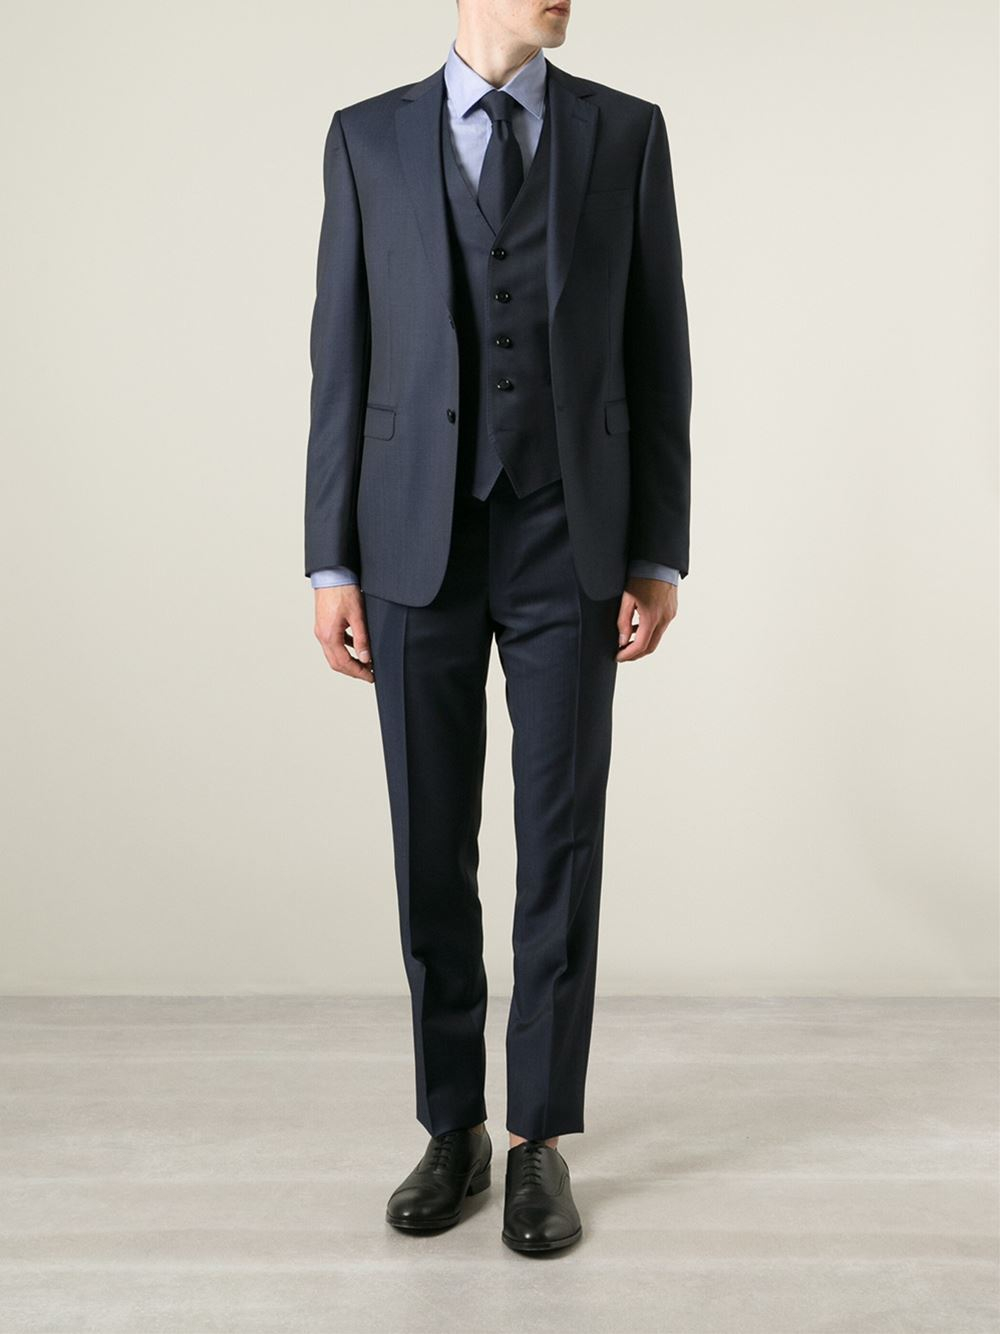 17770b49 Lyst - Z Zegna Three Piece Suit in Blue for Men